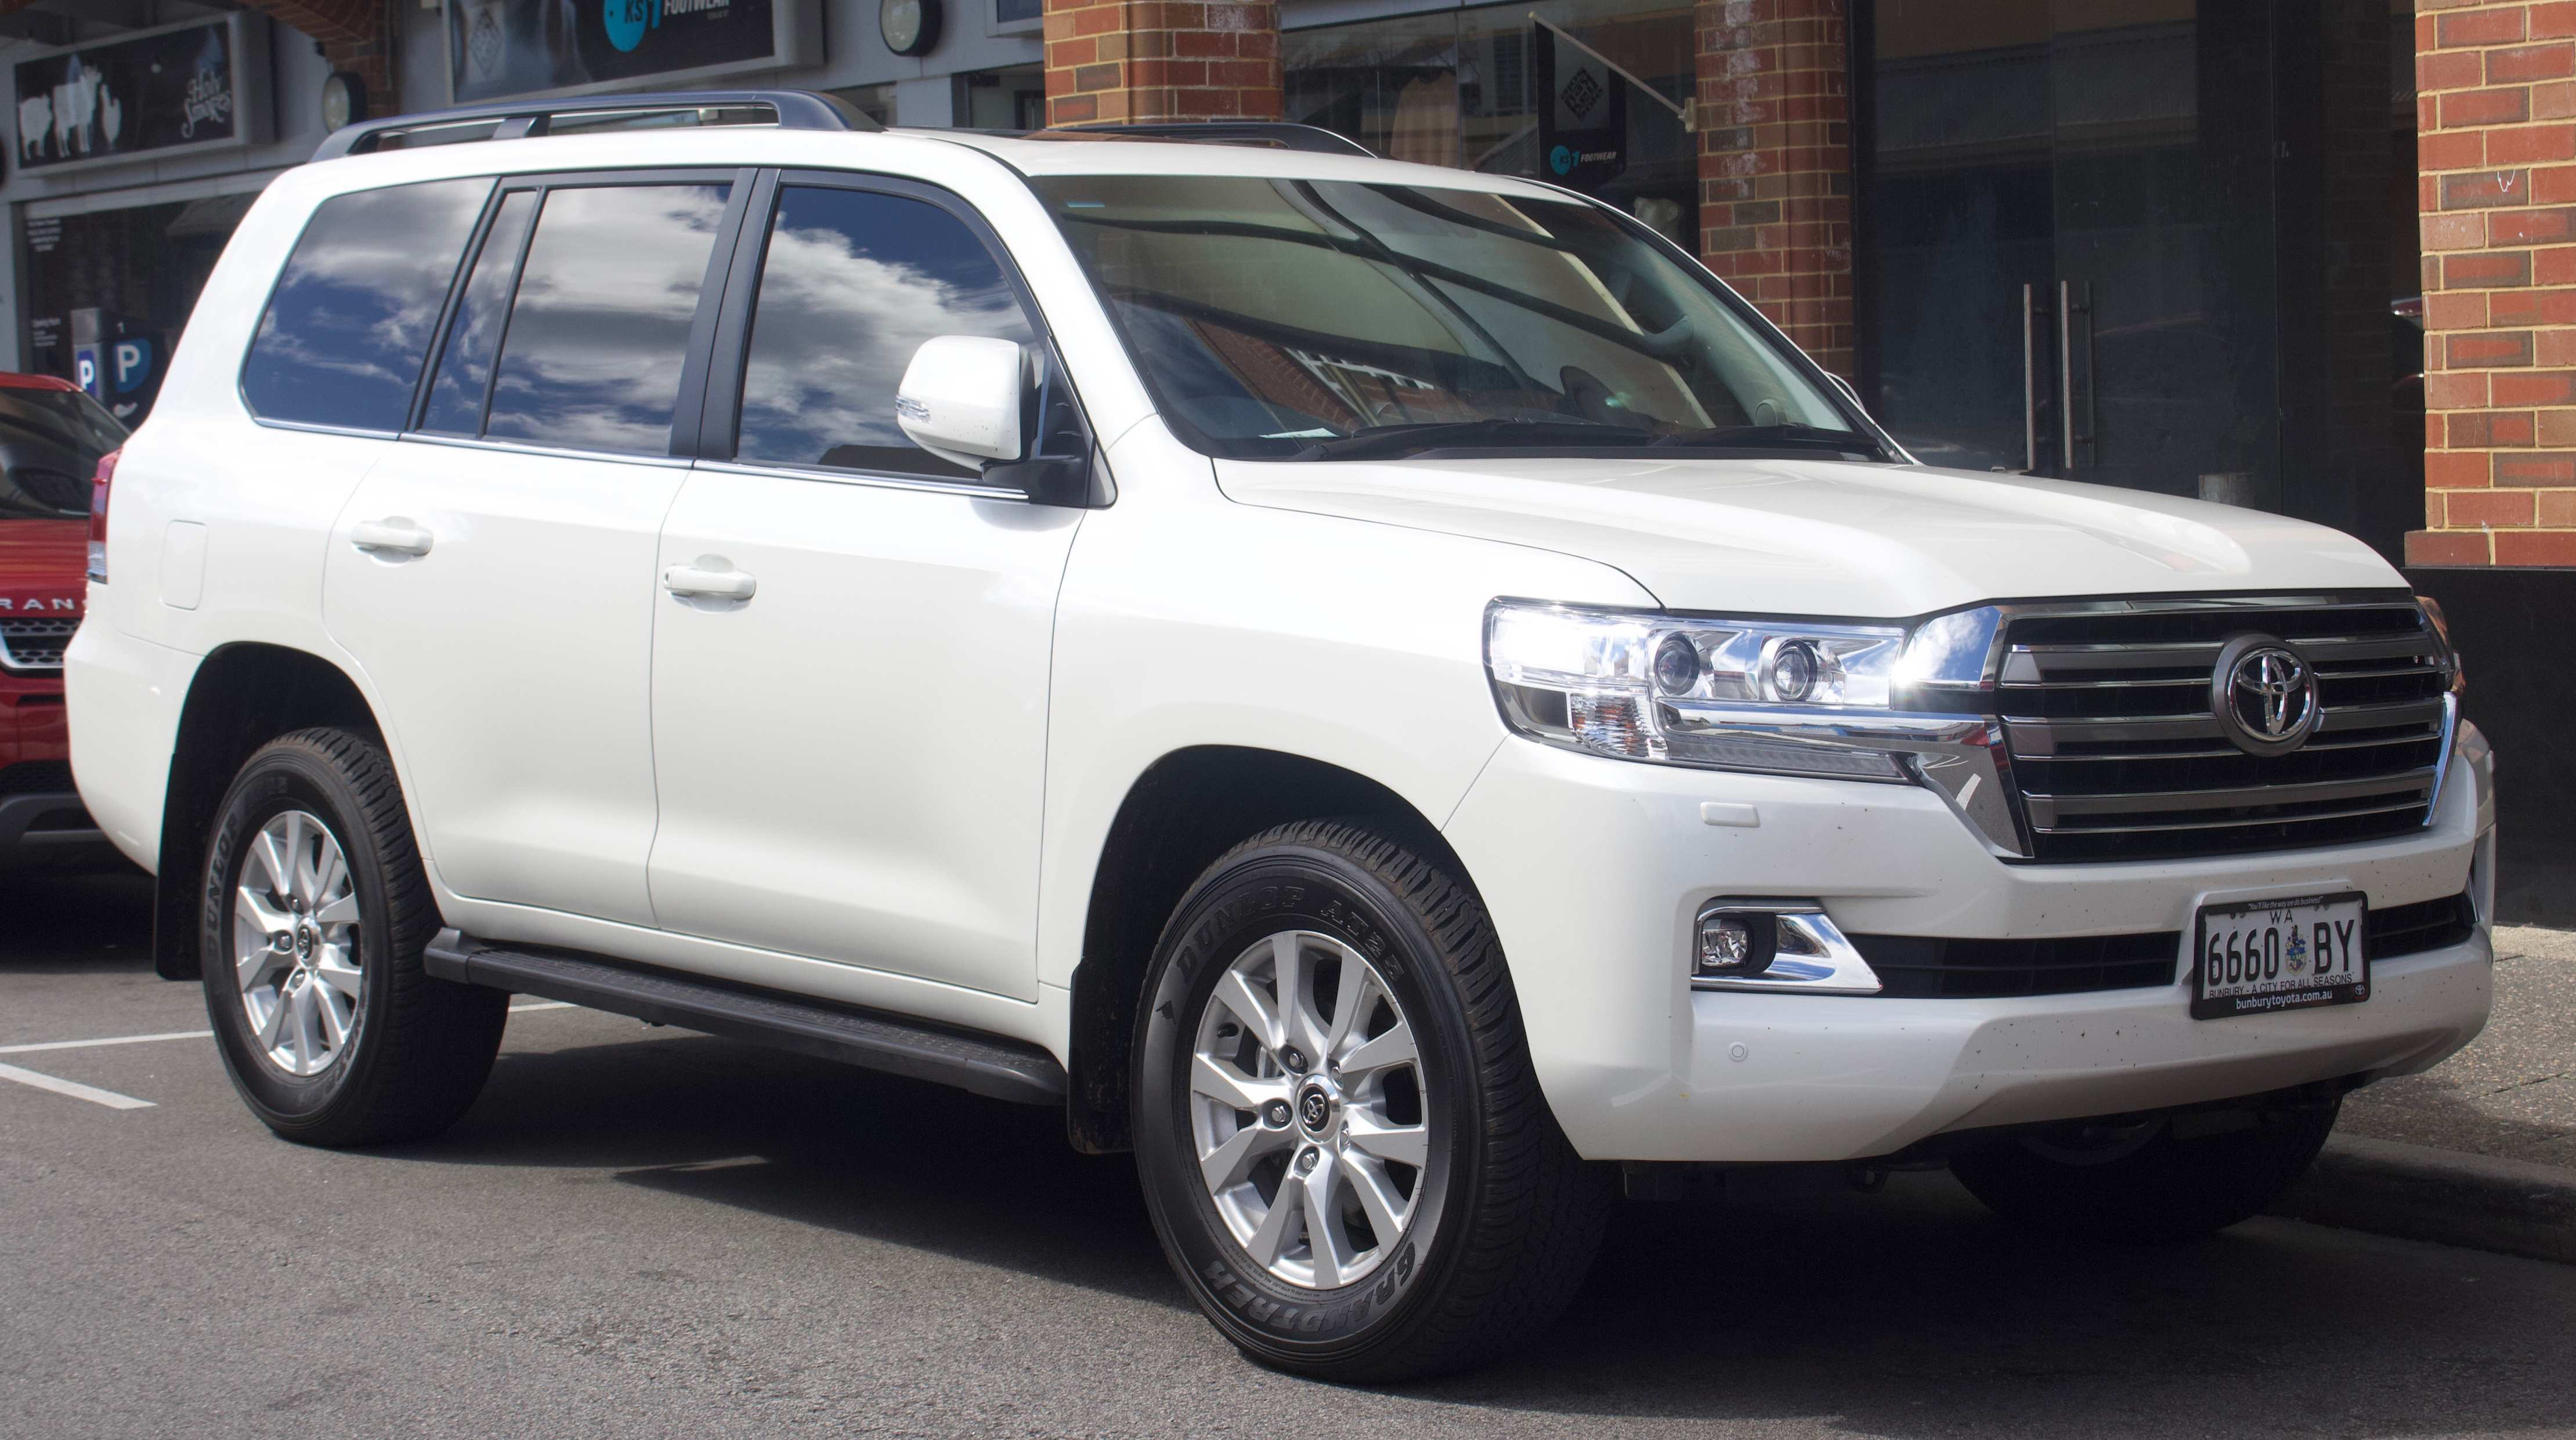 99 Best Review 2019 Toyota Land Cruiser 300 Picture by 2019 Toyota Land Cruiser 300